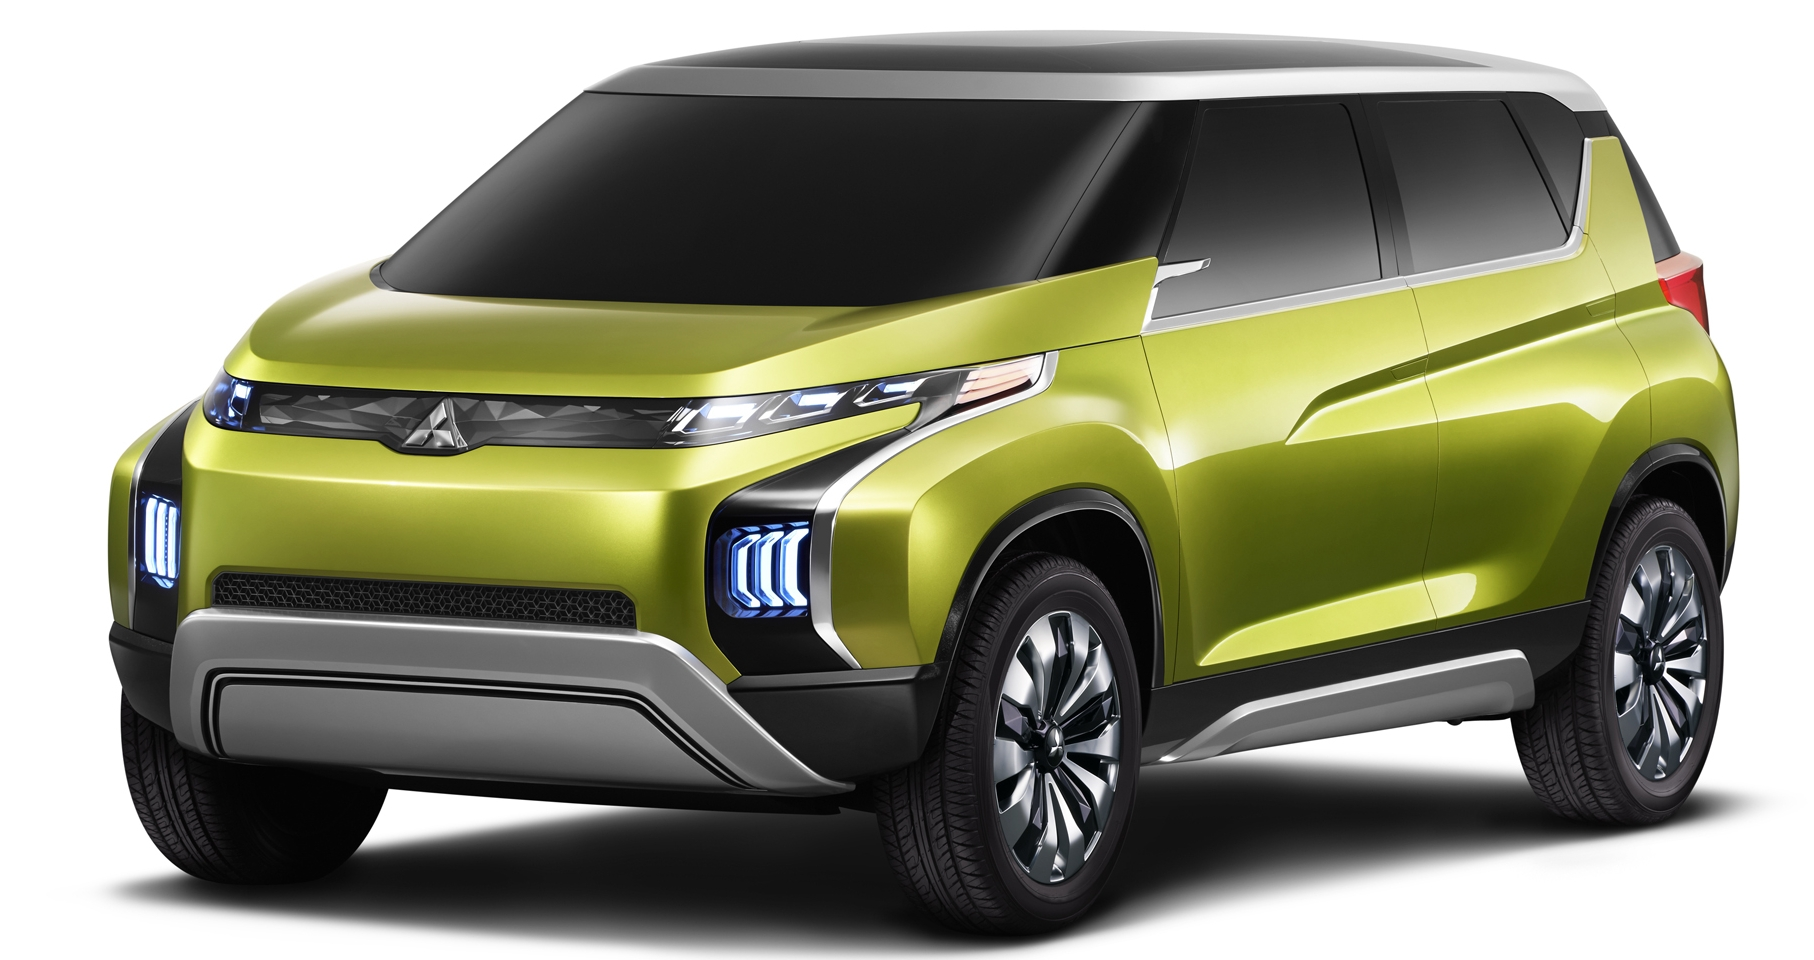 Mitsubishi Concept GC-PHEV, XR-PHEV and AR – previewing the new Pajero, ASX and Grandis Image 207638